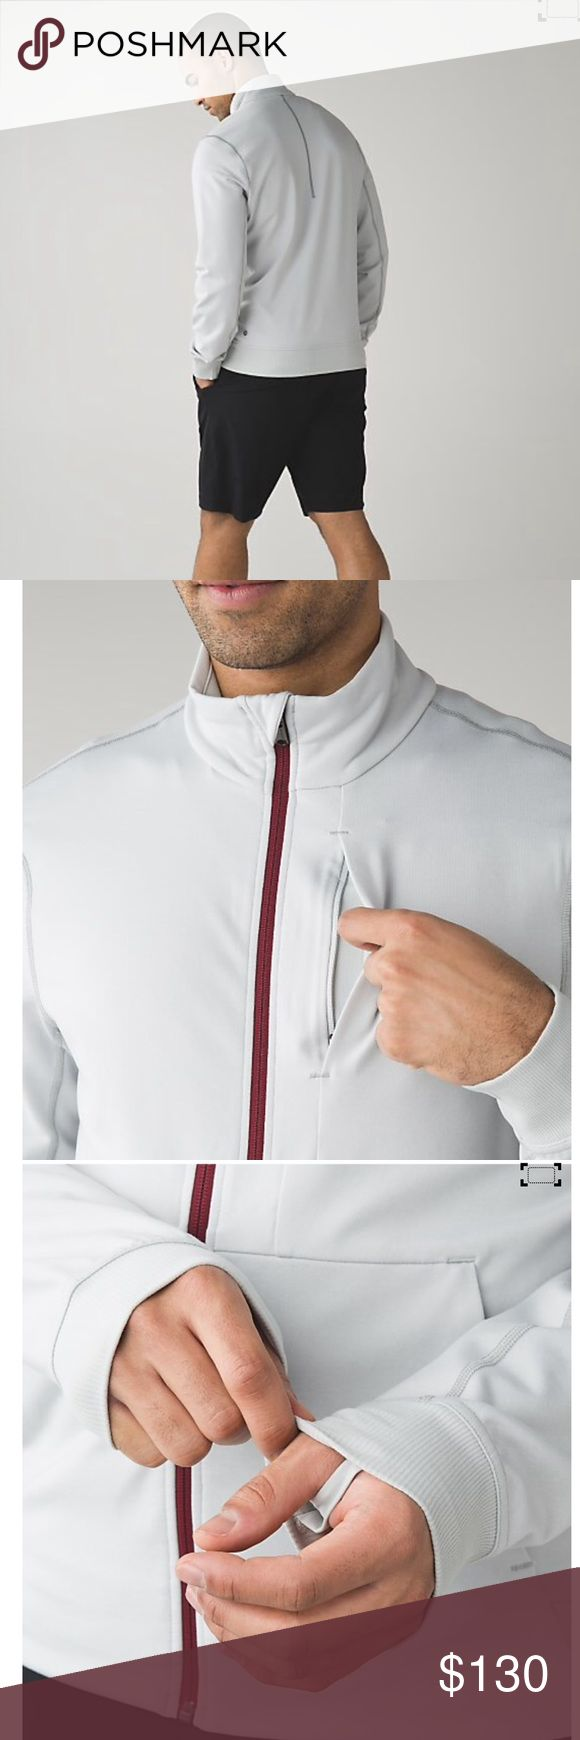 NWT Lululemon Men's PrePost Jacket We designed this versatile, sweat-wicking jacket to give you storage options when you're on the move.  Size L ~ Coulour:  Heathered Silver Spoon lululemon athletica Jackets & Coats Performance Jackets